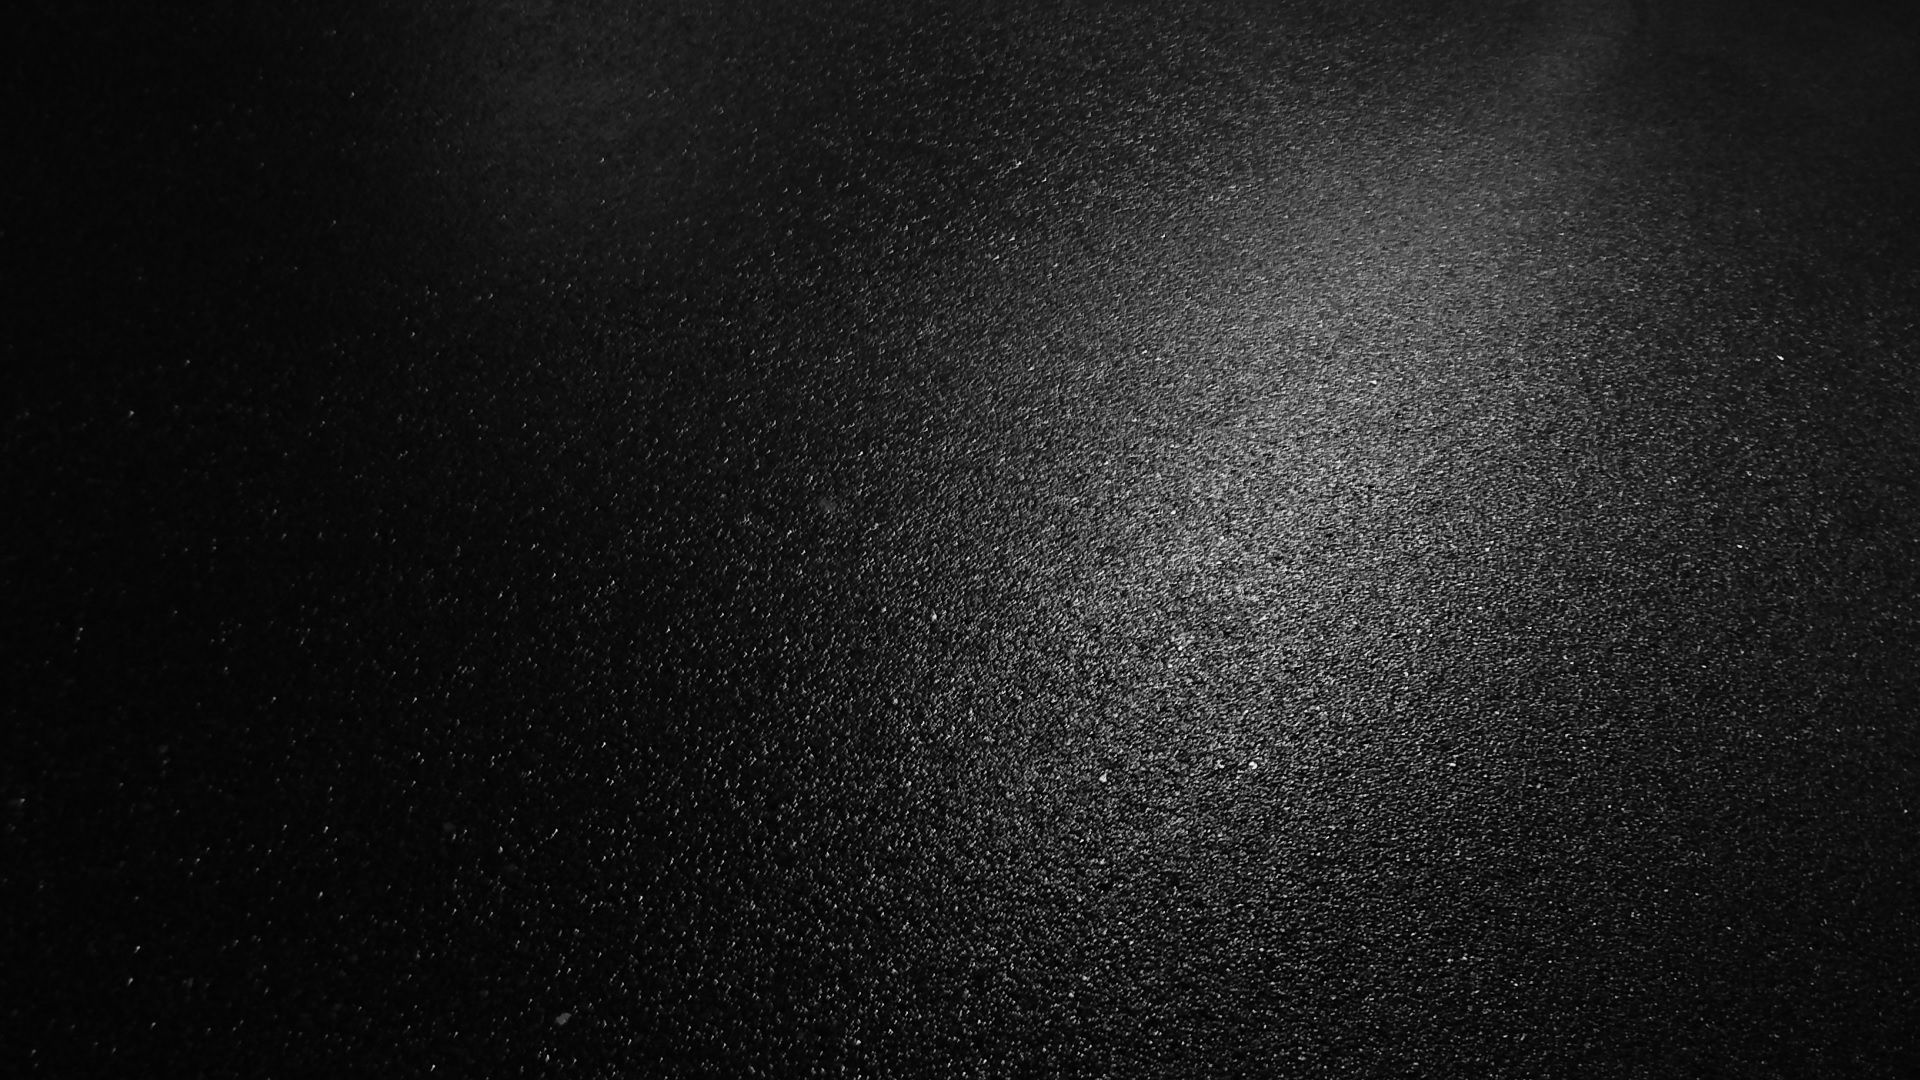 General 1920x1080 texture dark black fabric textured